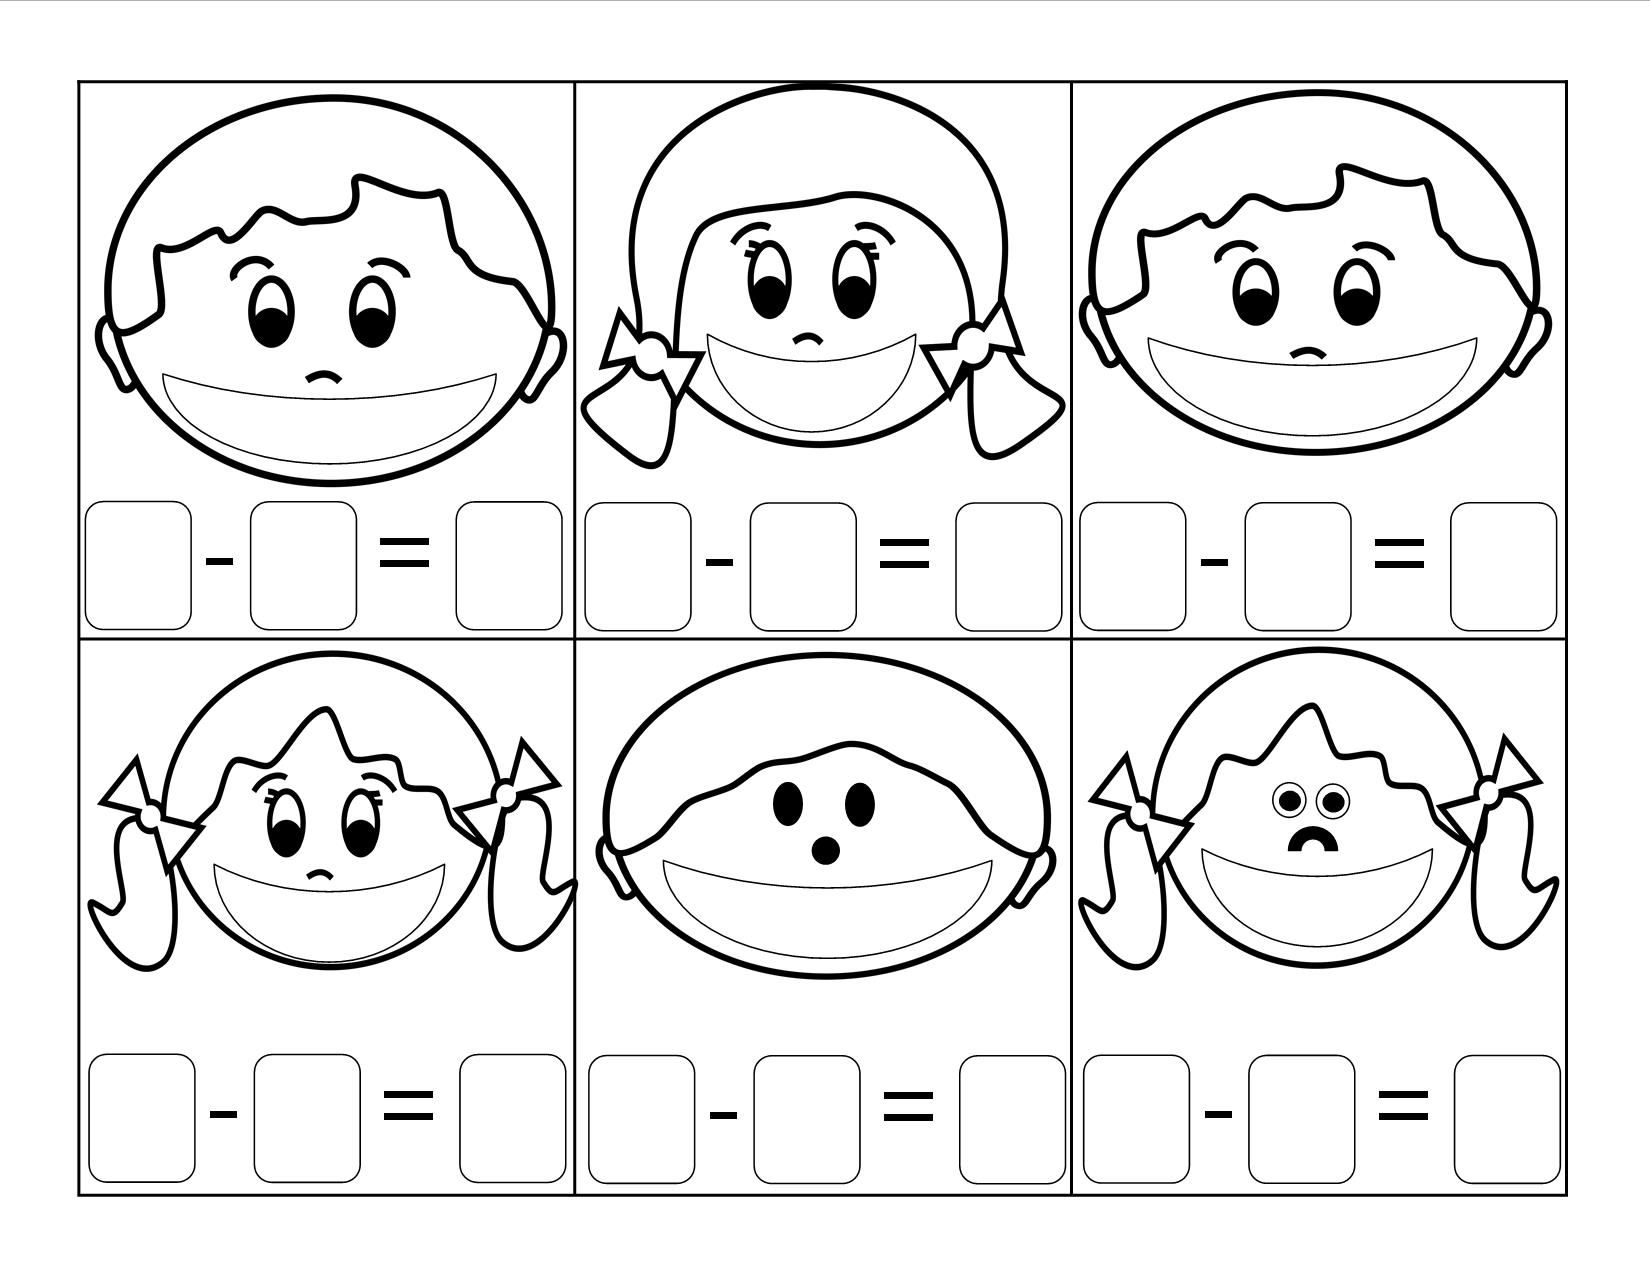 Ec De B C D E E Fc D likewise Lose A Tooth Counting Game furthermore Free Printable Teeth Worksheets besides C C Eea D B A E C Pre Kindergarten Early Education together with A Af E F Eab F B Loose Tooth Kindergarten Phonics. on loose teeth worksheet kindergarten